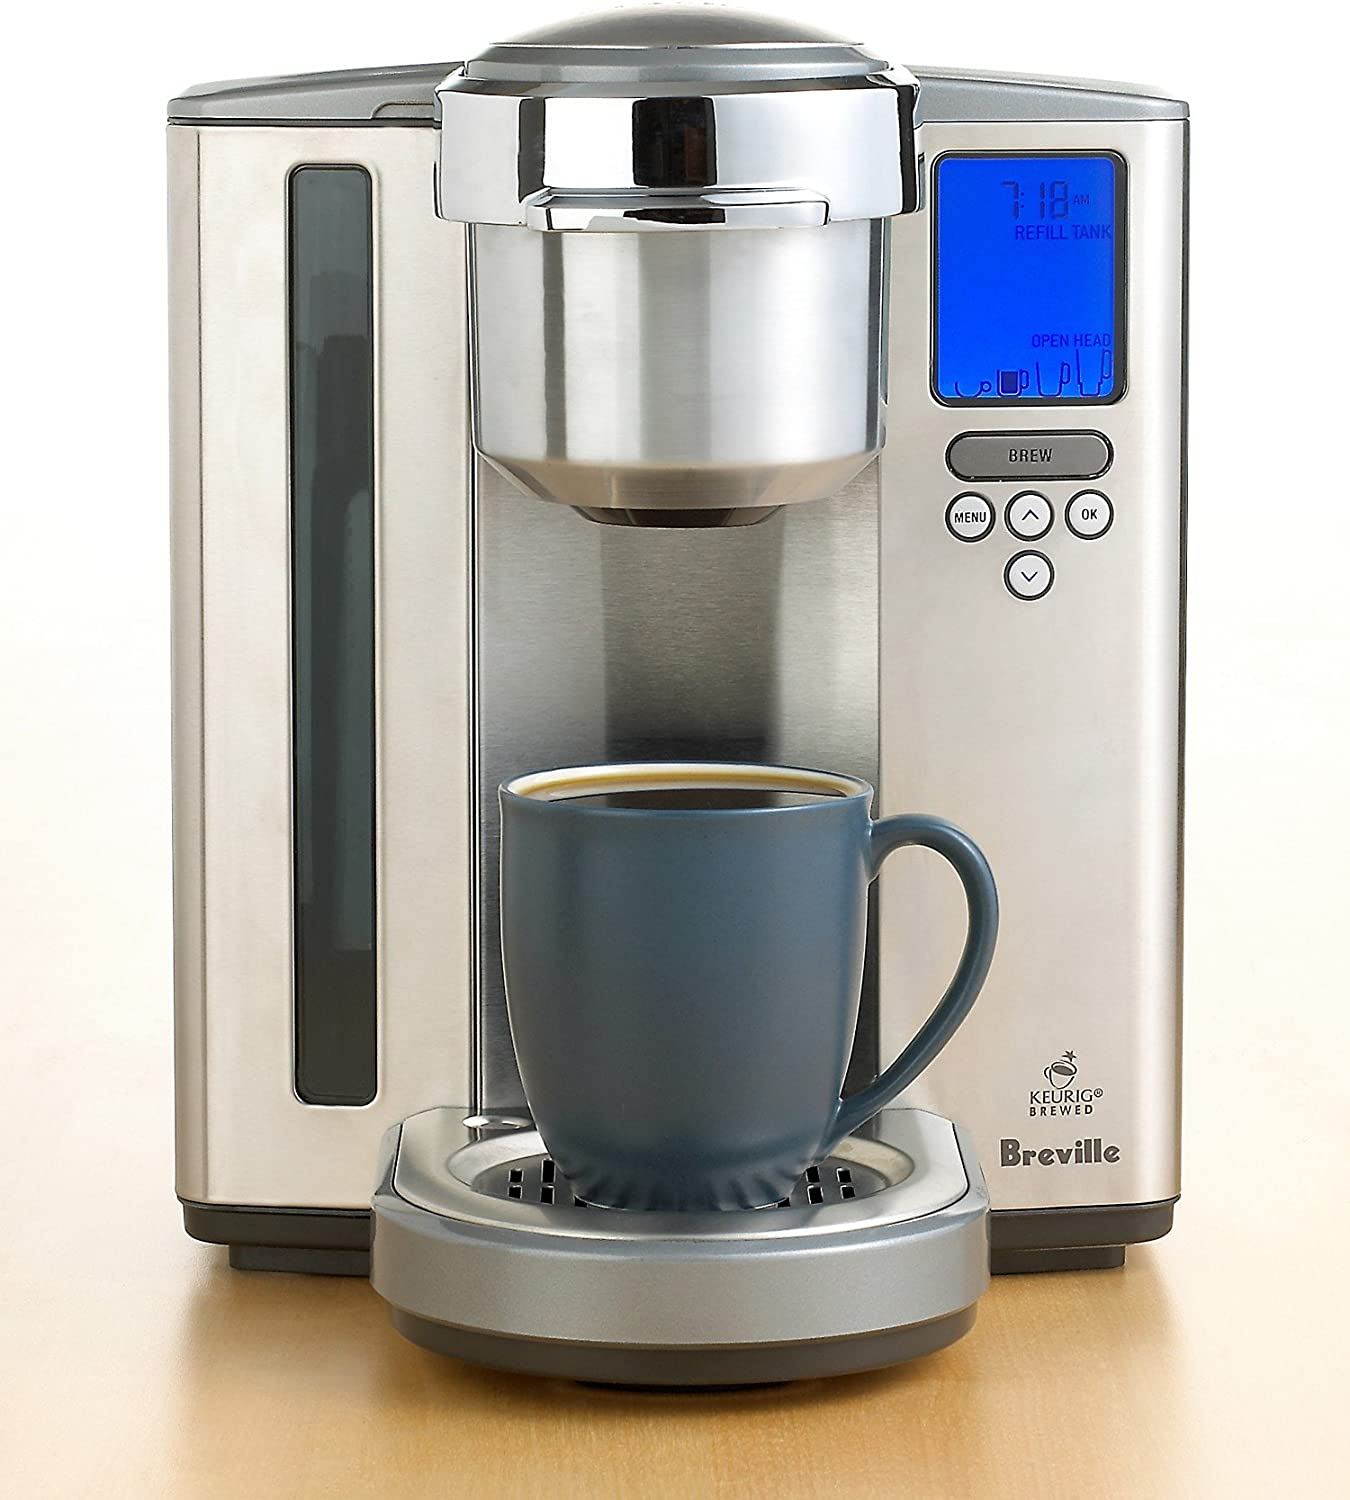 Breville BKC600XL Gourmet Single-Cup Coffee Brewer - Refurbished:  Amazon.ca: Home & Kitchen